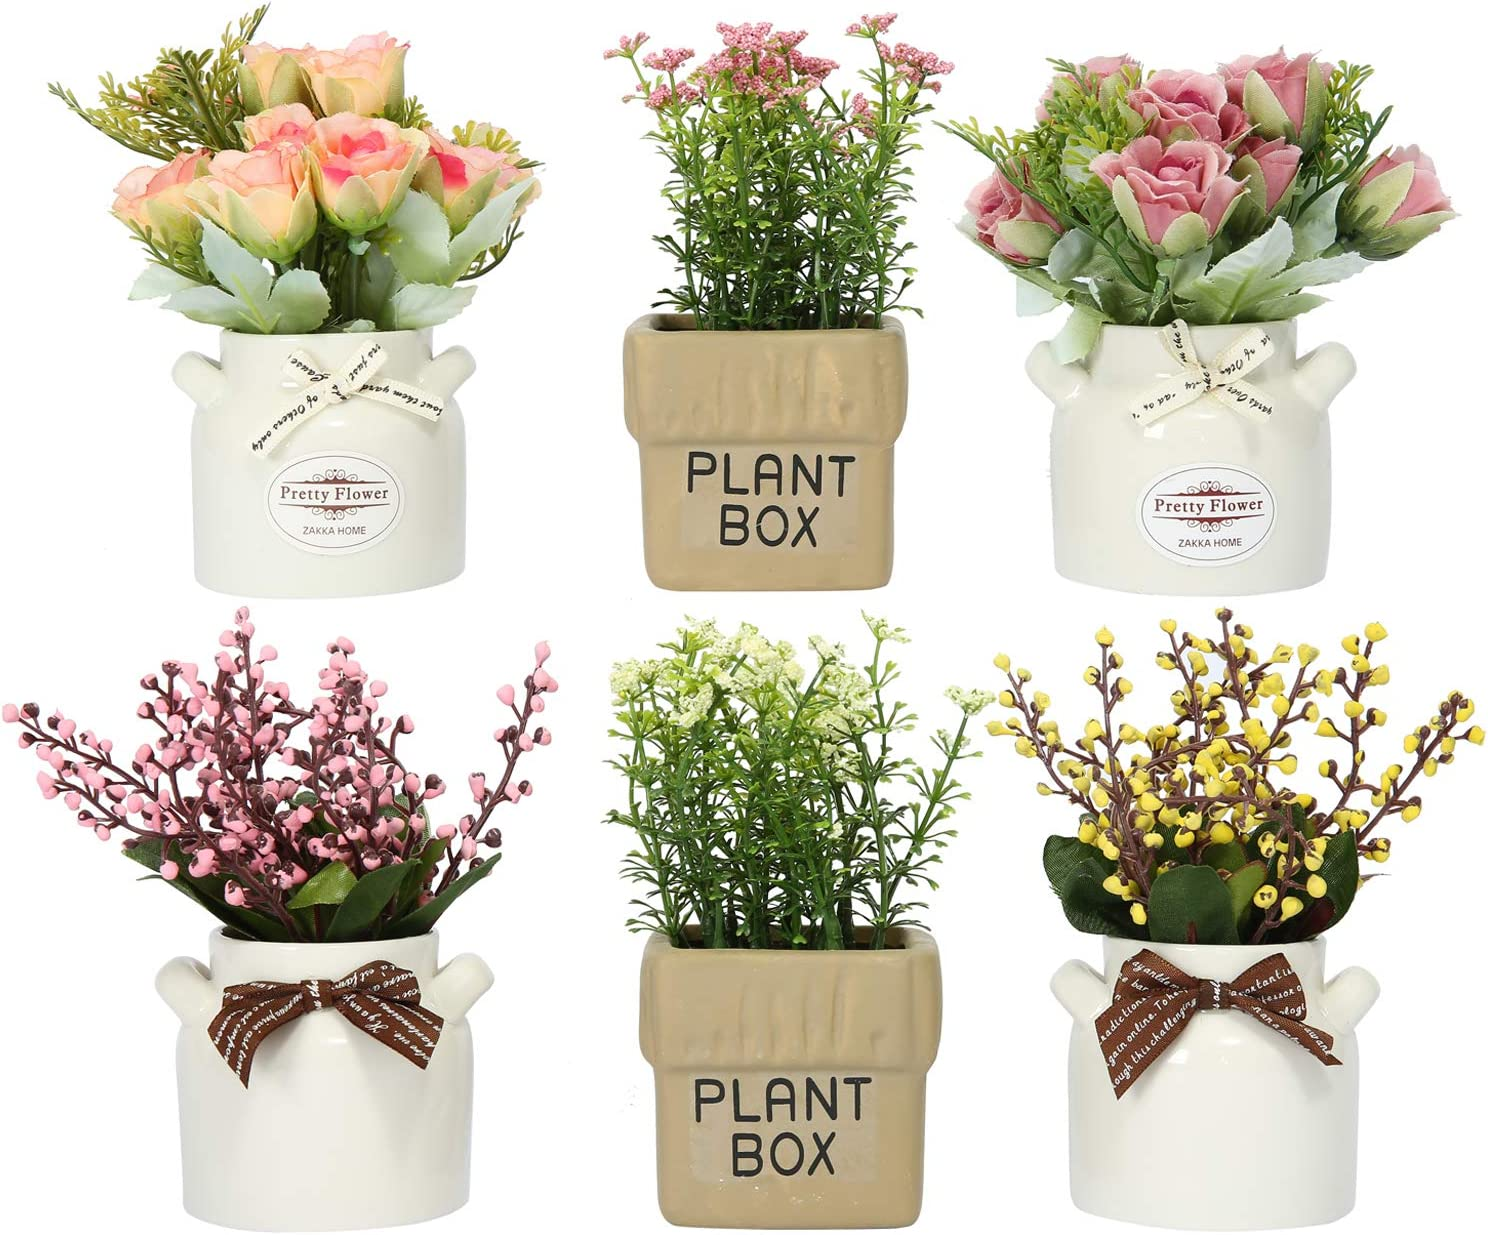 LUEUR 6Pcs Artificial Pot Flowers with Ceramic Potted Fake Flower Arrangements Small Faux Flower in Pots for Home Farmhouse Office Windowsill Table Centerpieces Shelf Decor